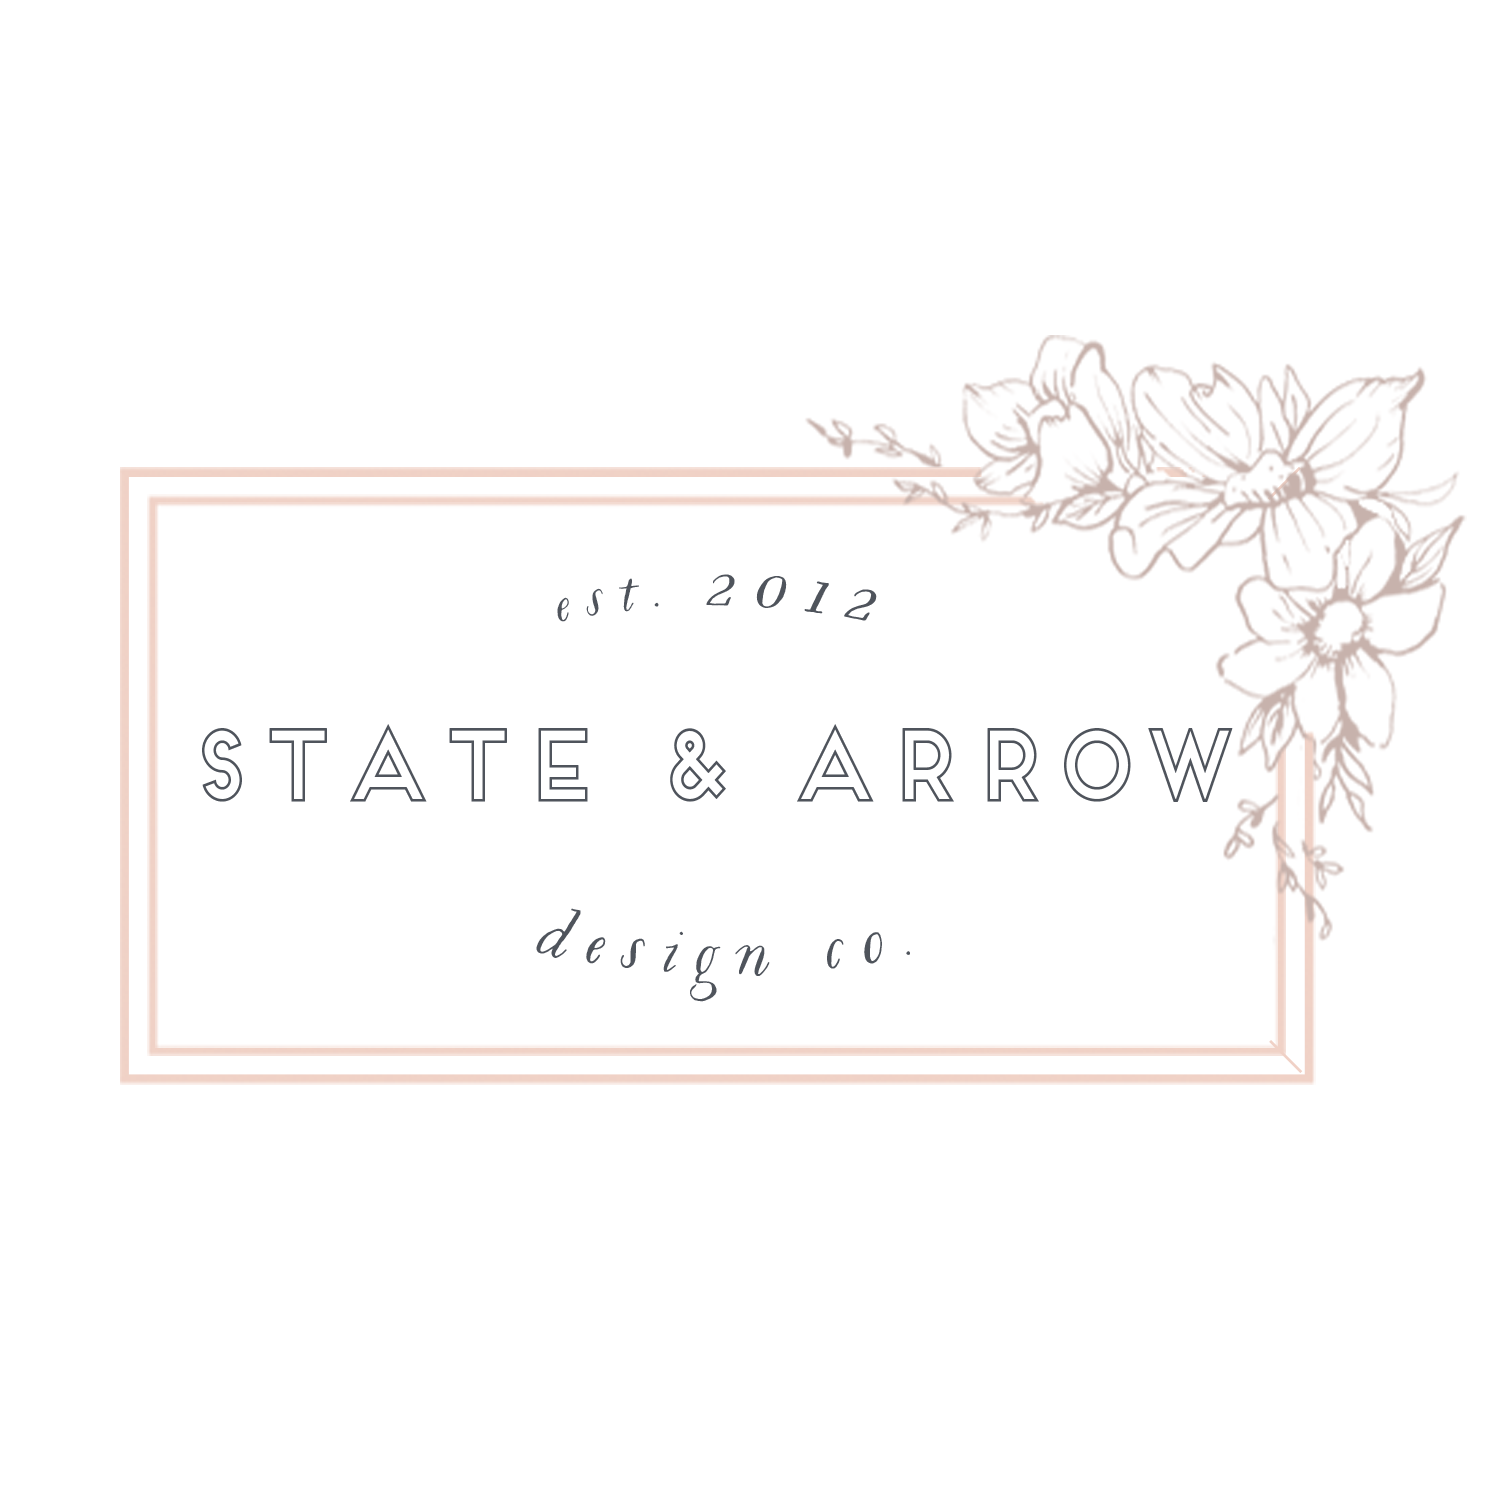 State & Arrow Design Co.